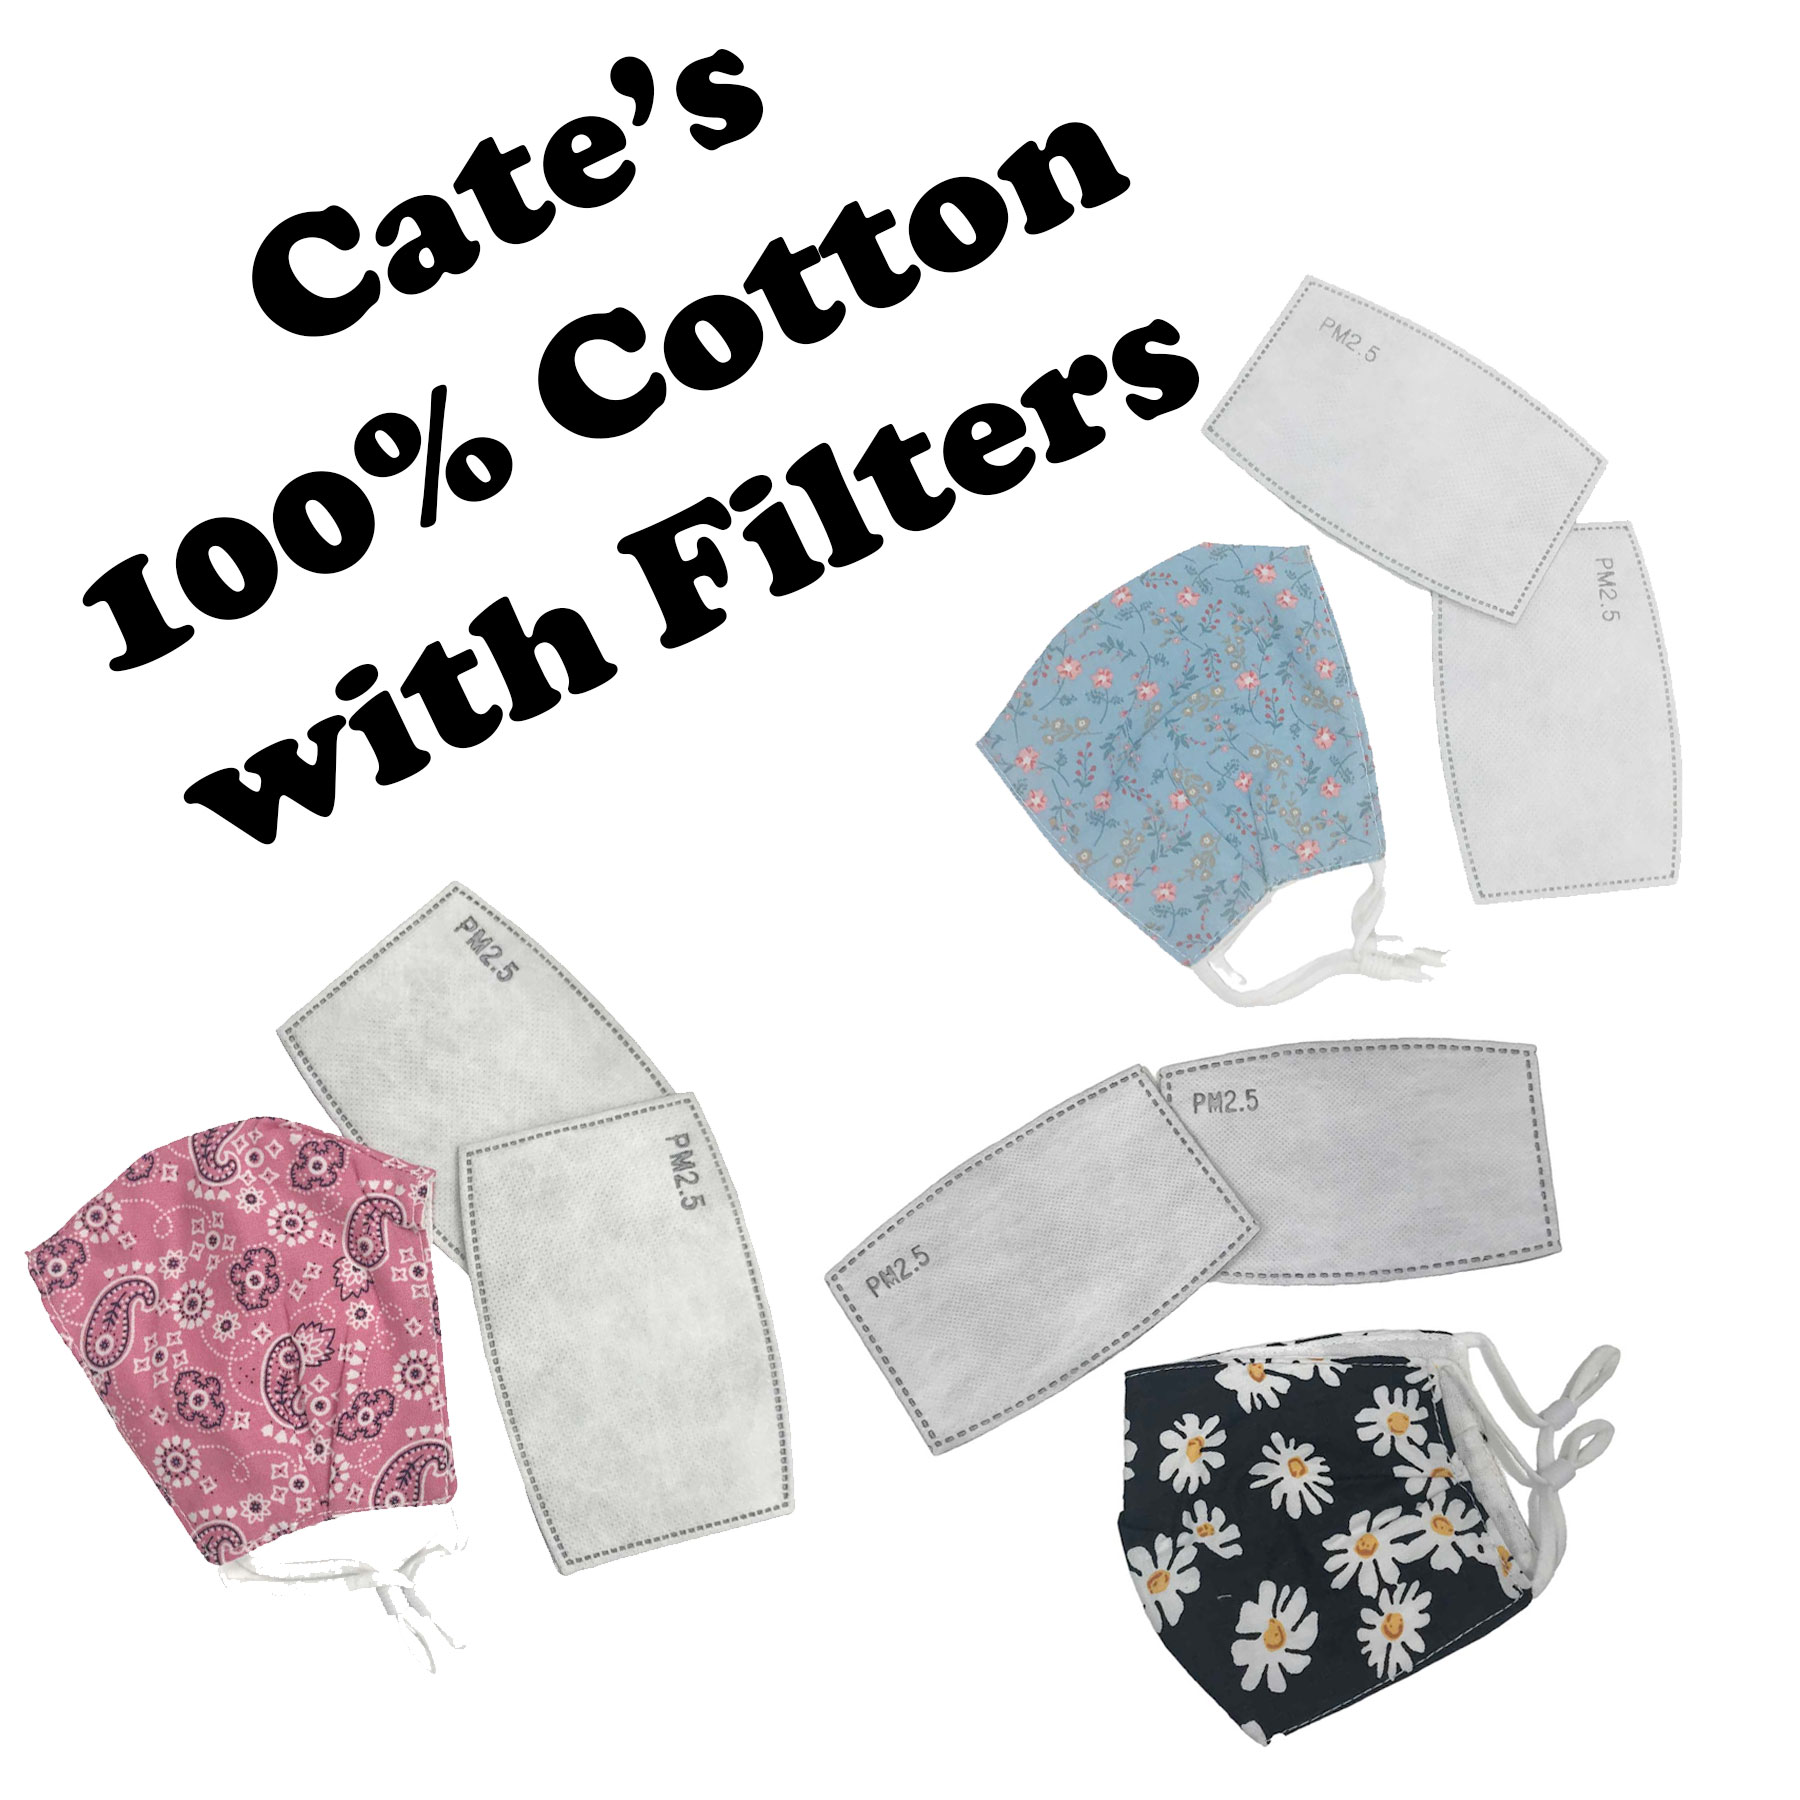 Protective Masks by Cate with Filters